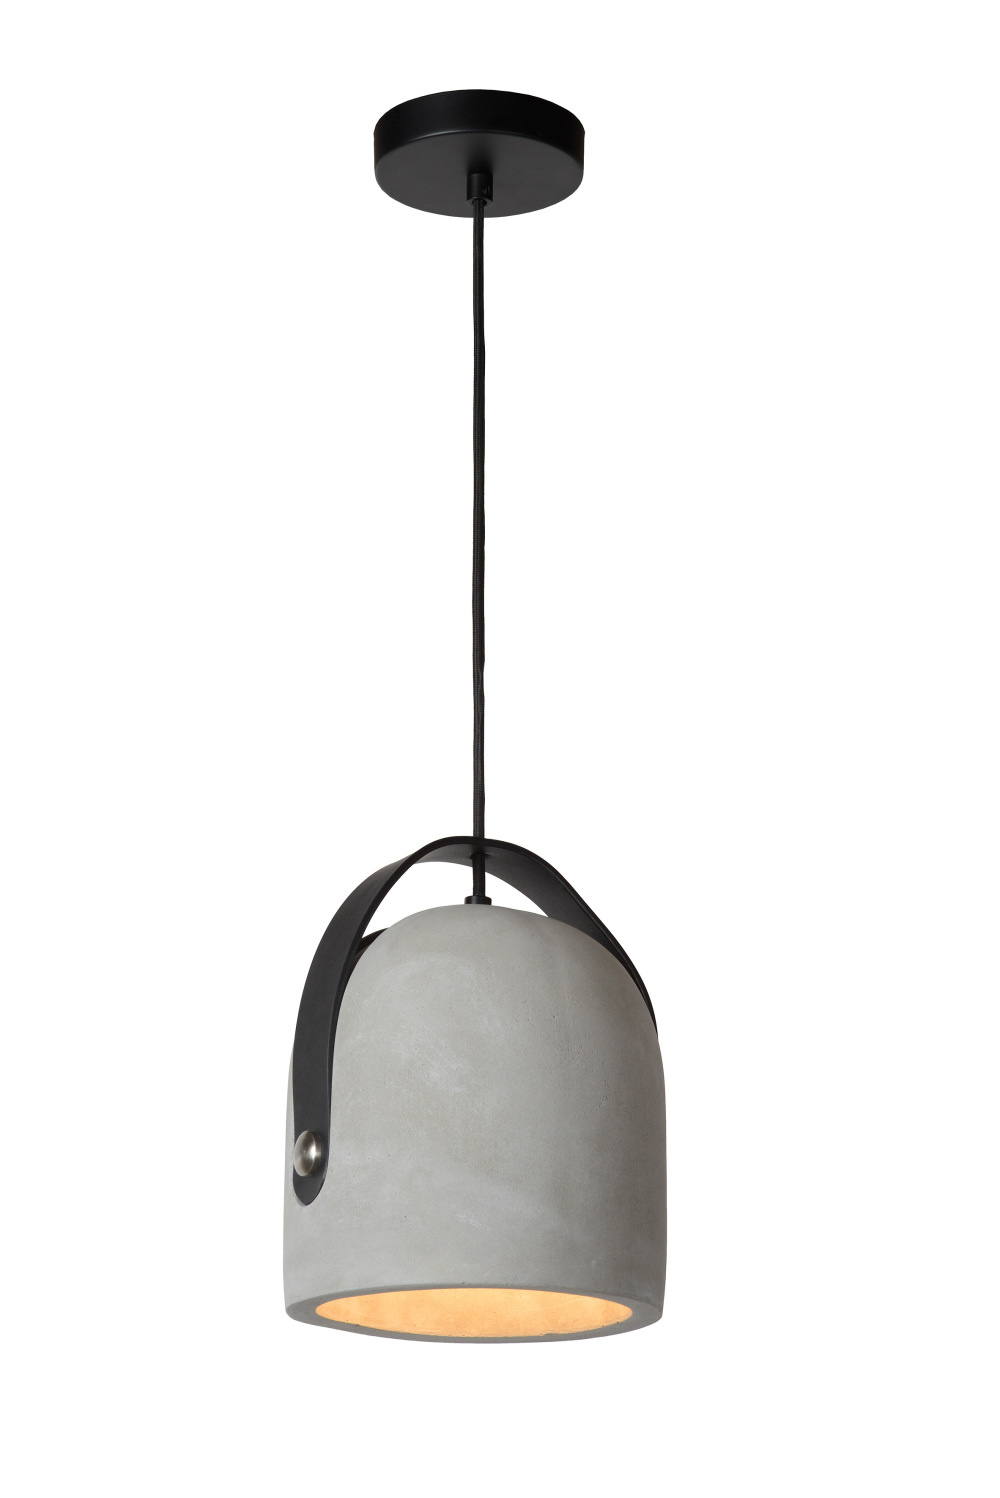 Lucide COPAIN Hanglamp-Taupe-Ø20-1xE27-40W-Beton